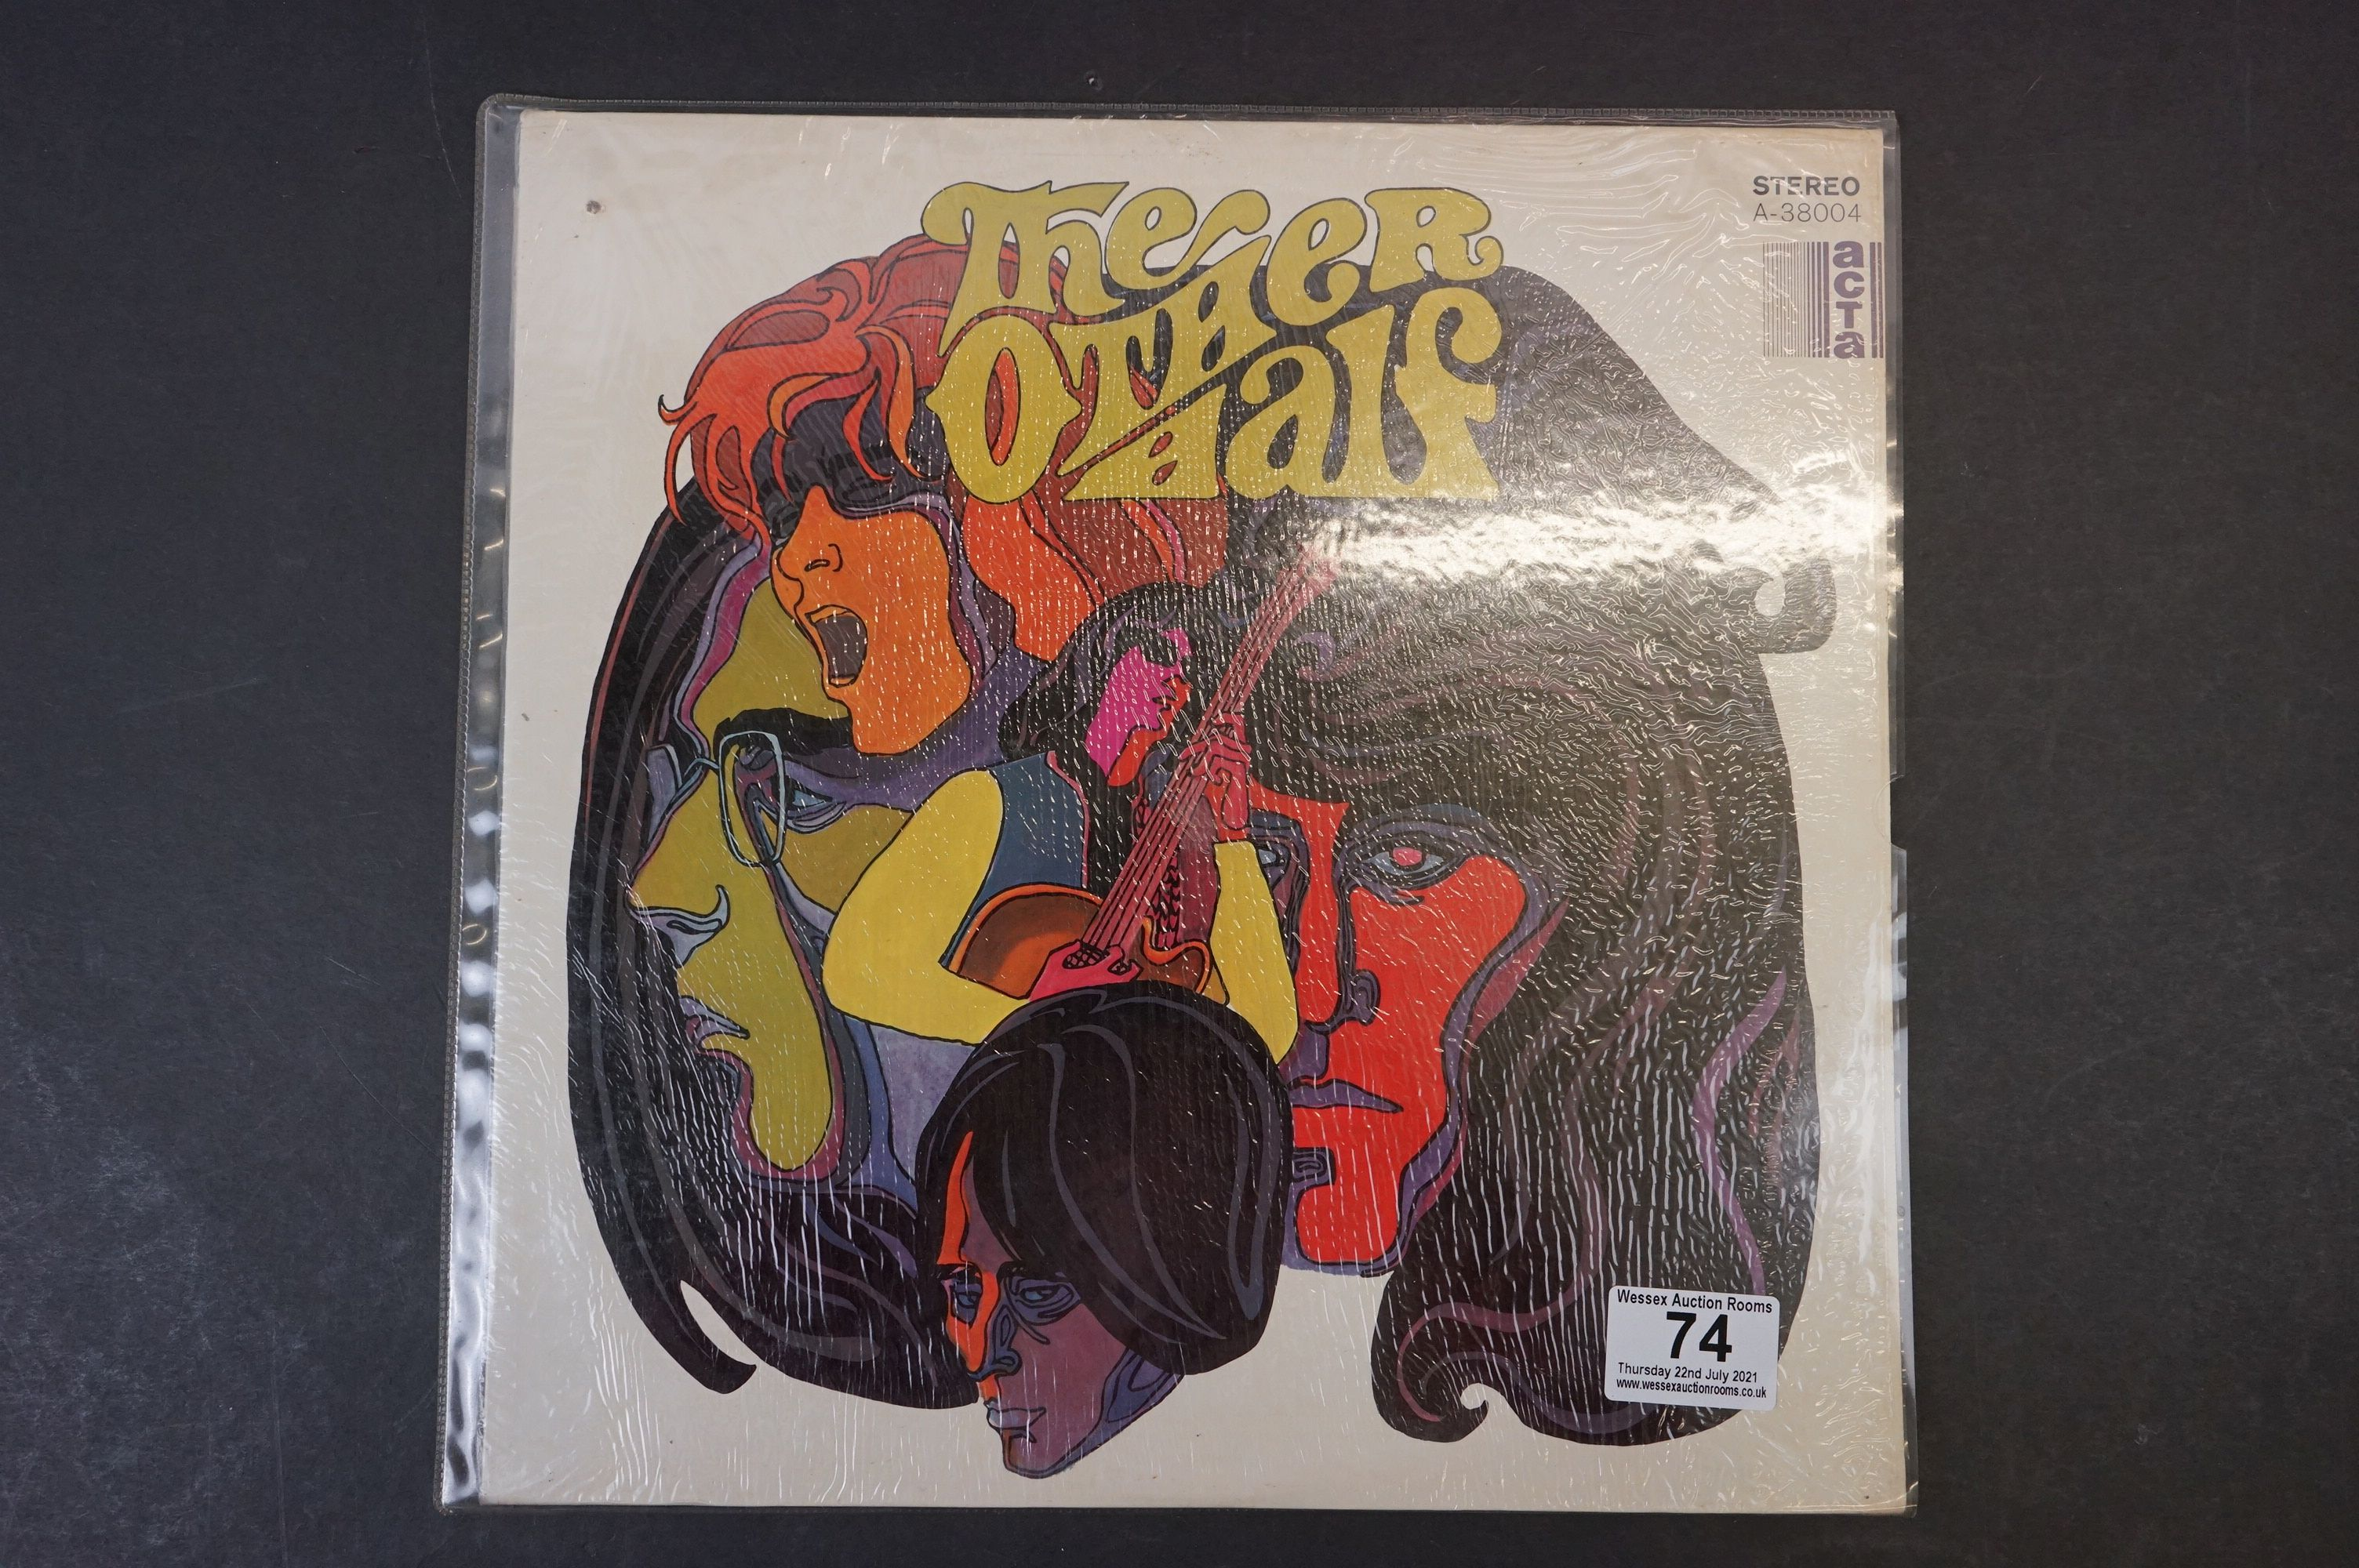 Vinyl - Psych / Garage - The Other Half - The Other Half, 1968 US, Acta Records, Randy Holden?s